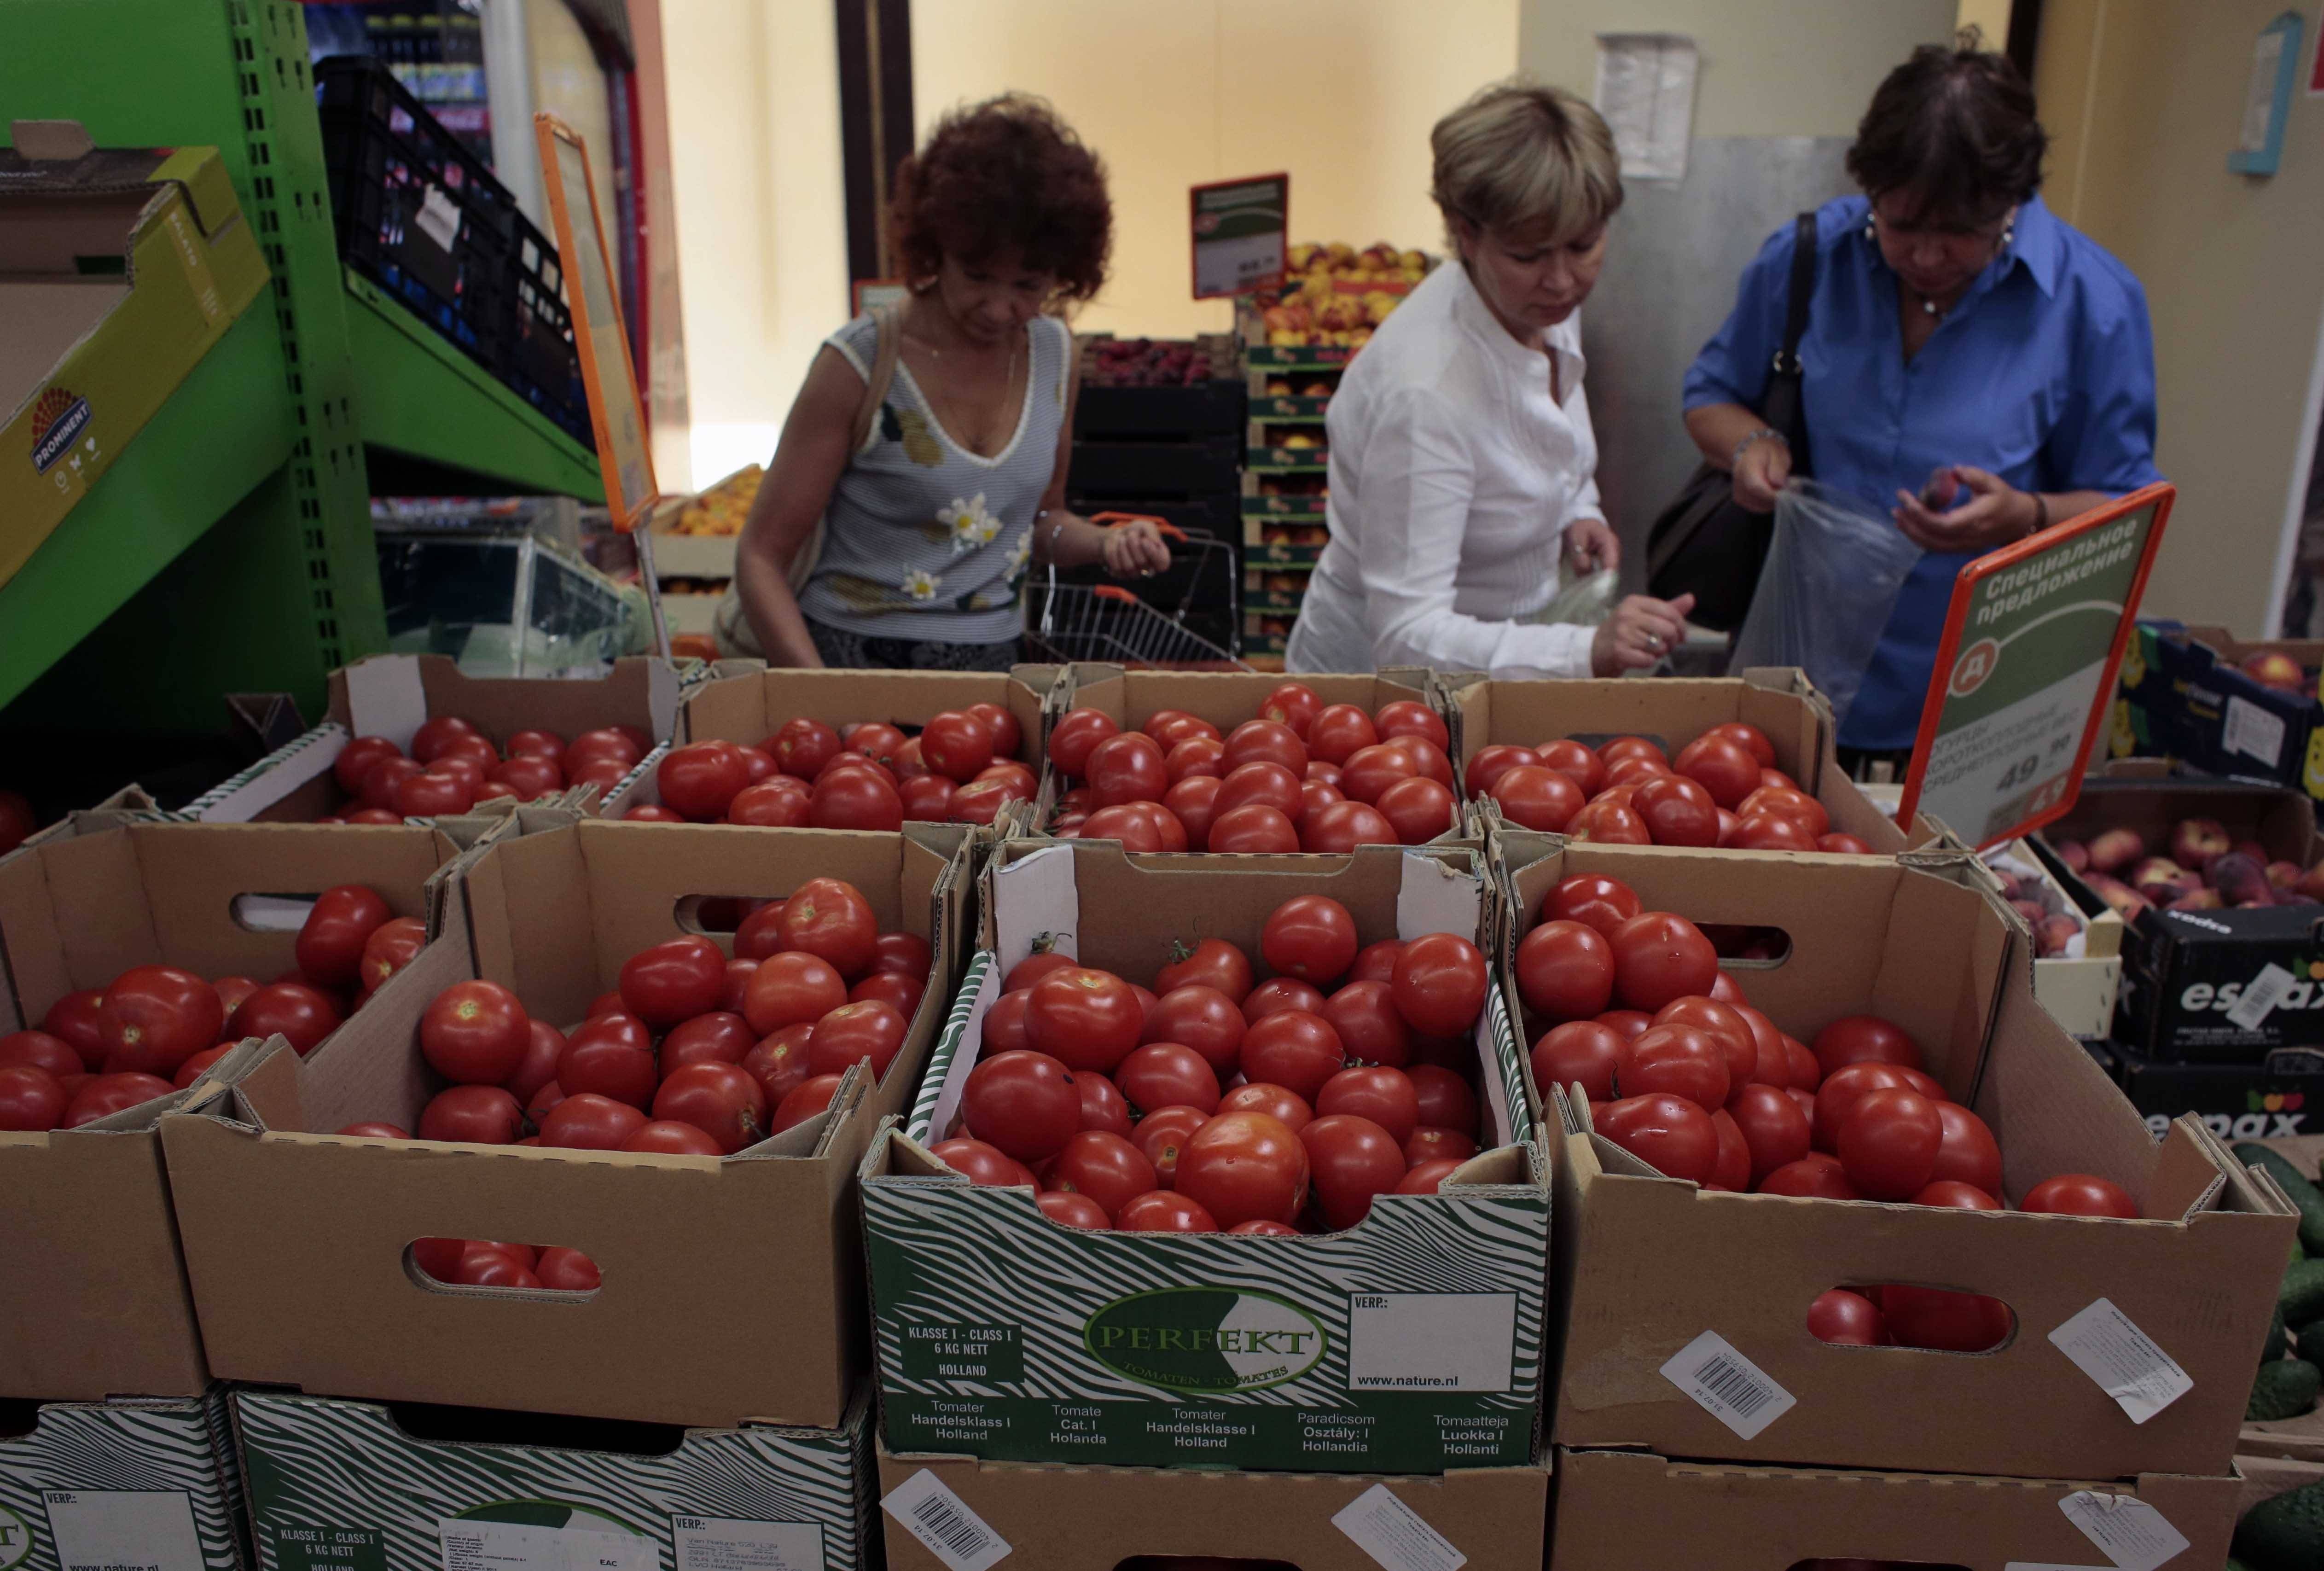 Women choose Dutch tomatoes at a supermarket in downtown Moscow on Thursday, Aug. 7, 2014. The Russian government has banned all imports of meat, fish, milk and milk products and fruit and vegetables from the United States, the European Union, Australia, Canada and Norway, Prime Minister Dmitry Medvedev announced Thursday.